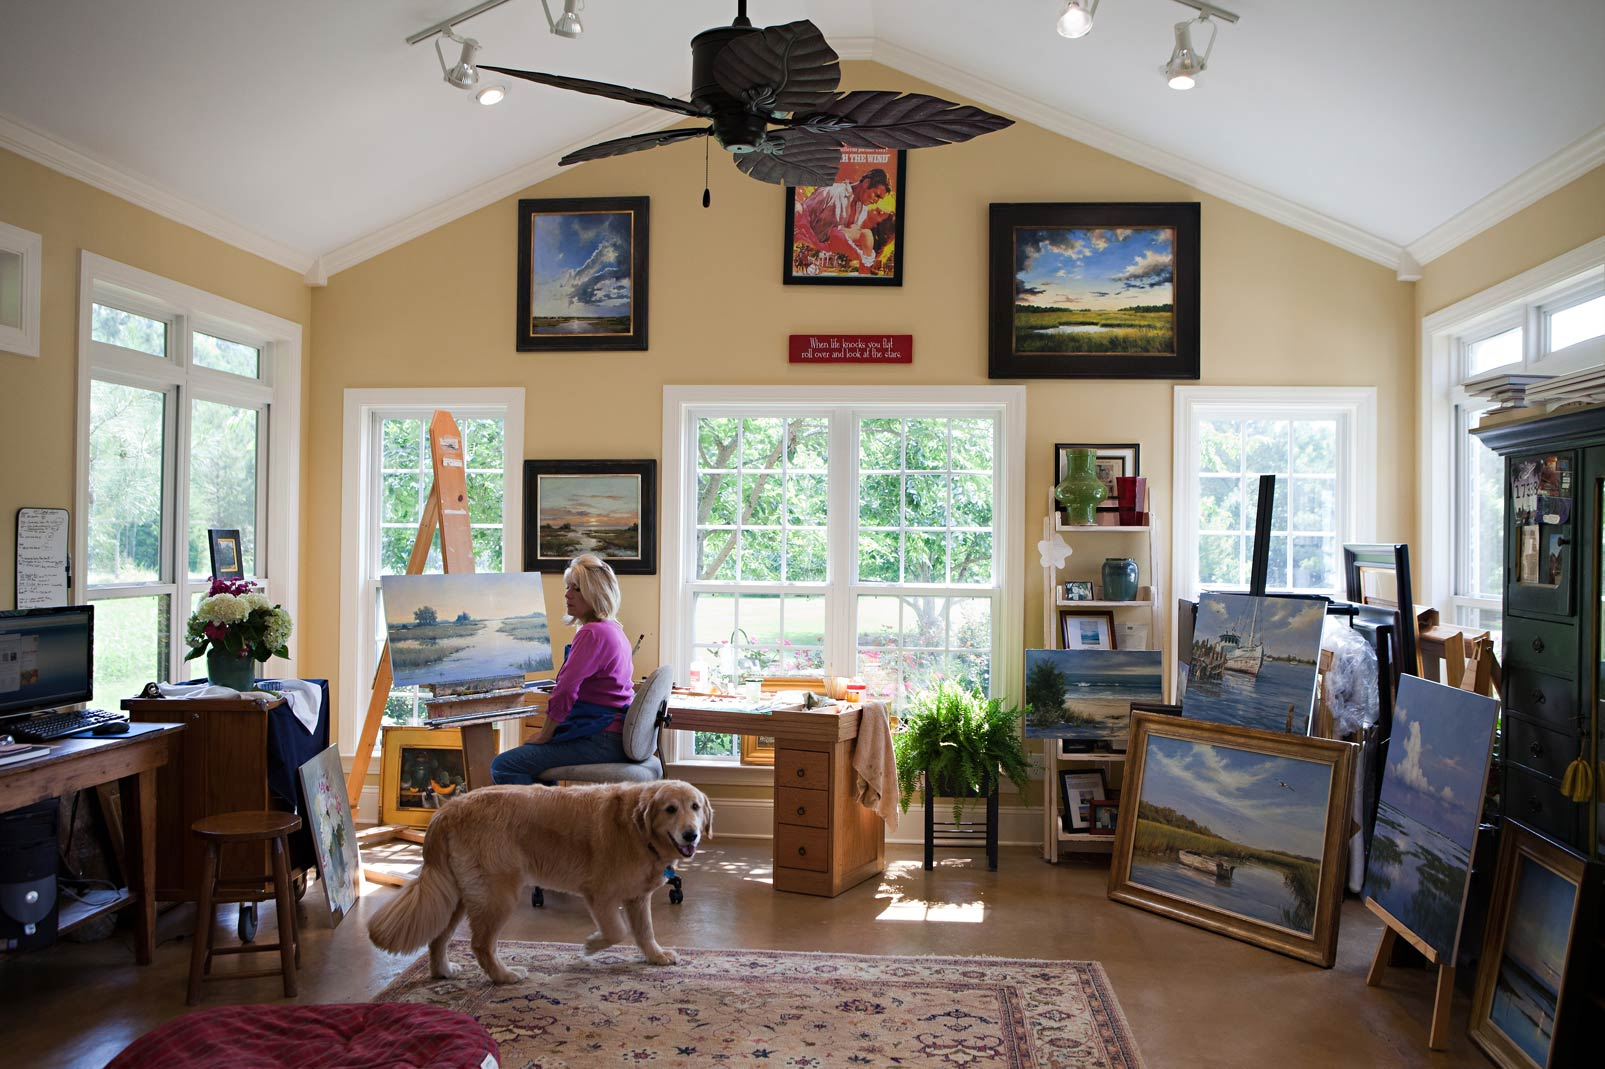 Paula b holtzclaw - Home art studio ...